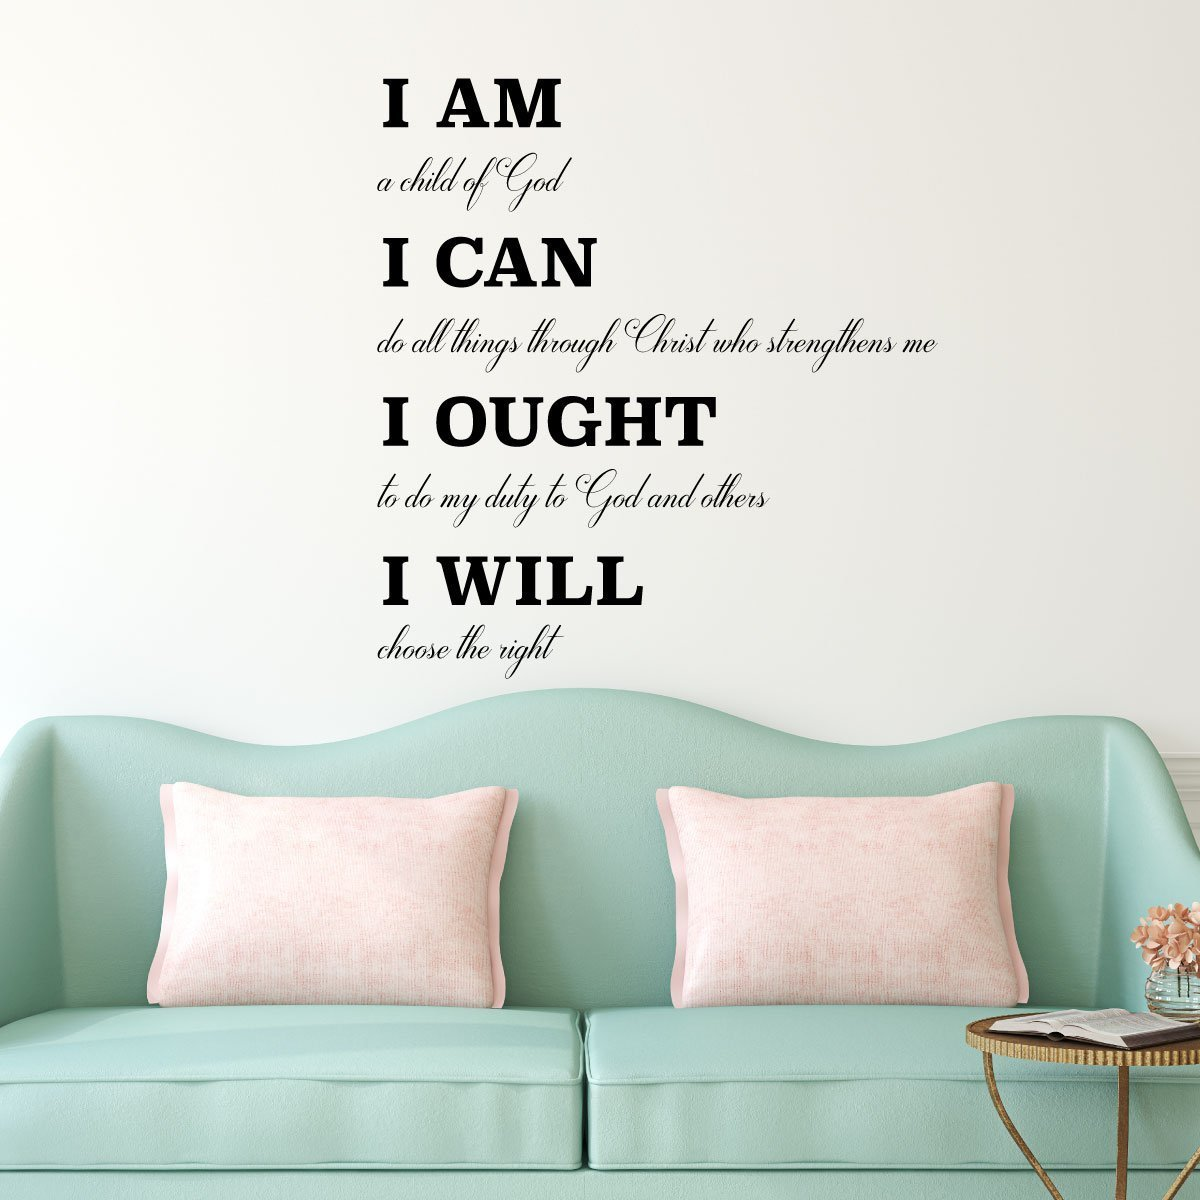 Charlotte Mason Wall Decal I am i can i ought i will